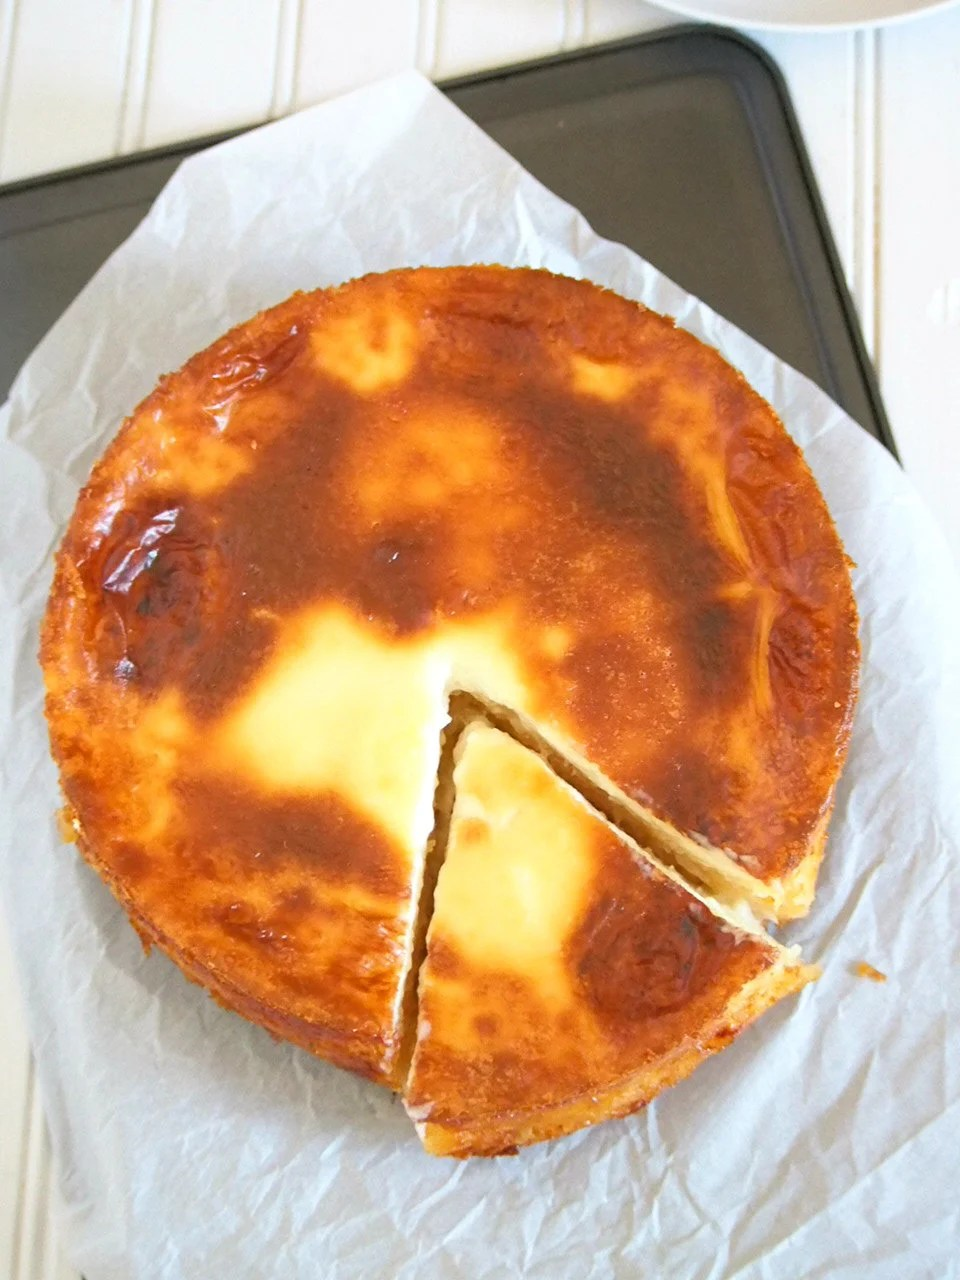 This cassava cake is appropriately sweet with notes of cheddar cheese and milk, and a whole load of the filling, tasty cassava meat.